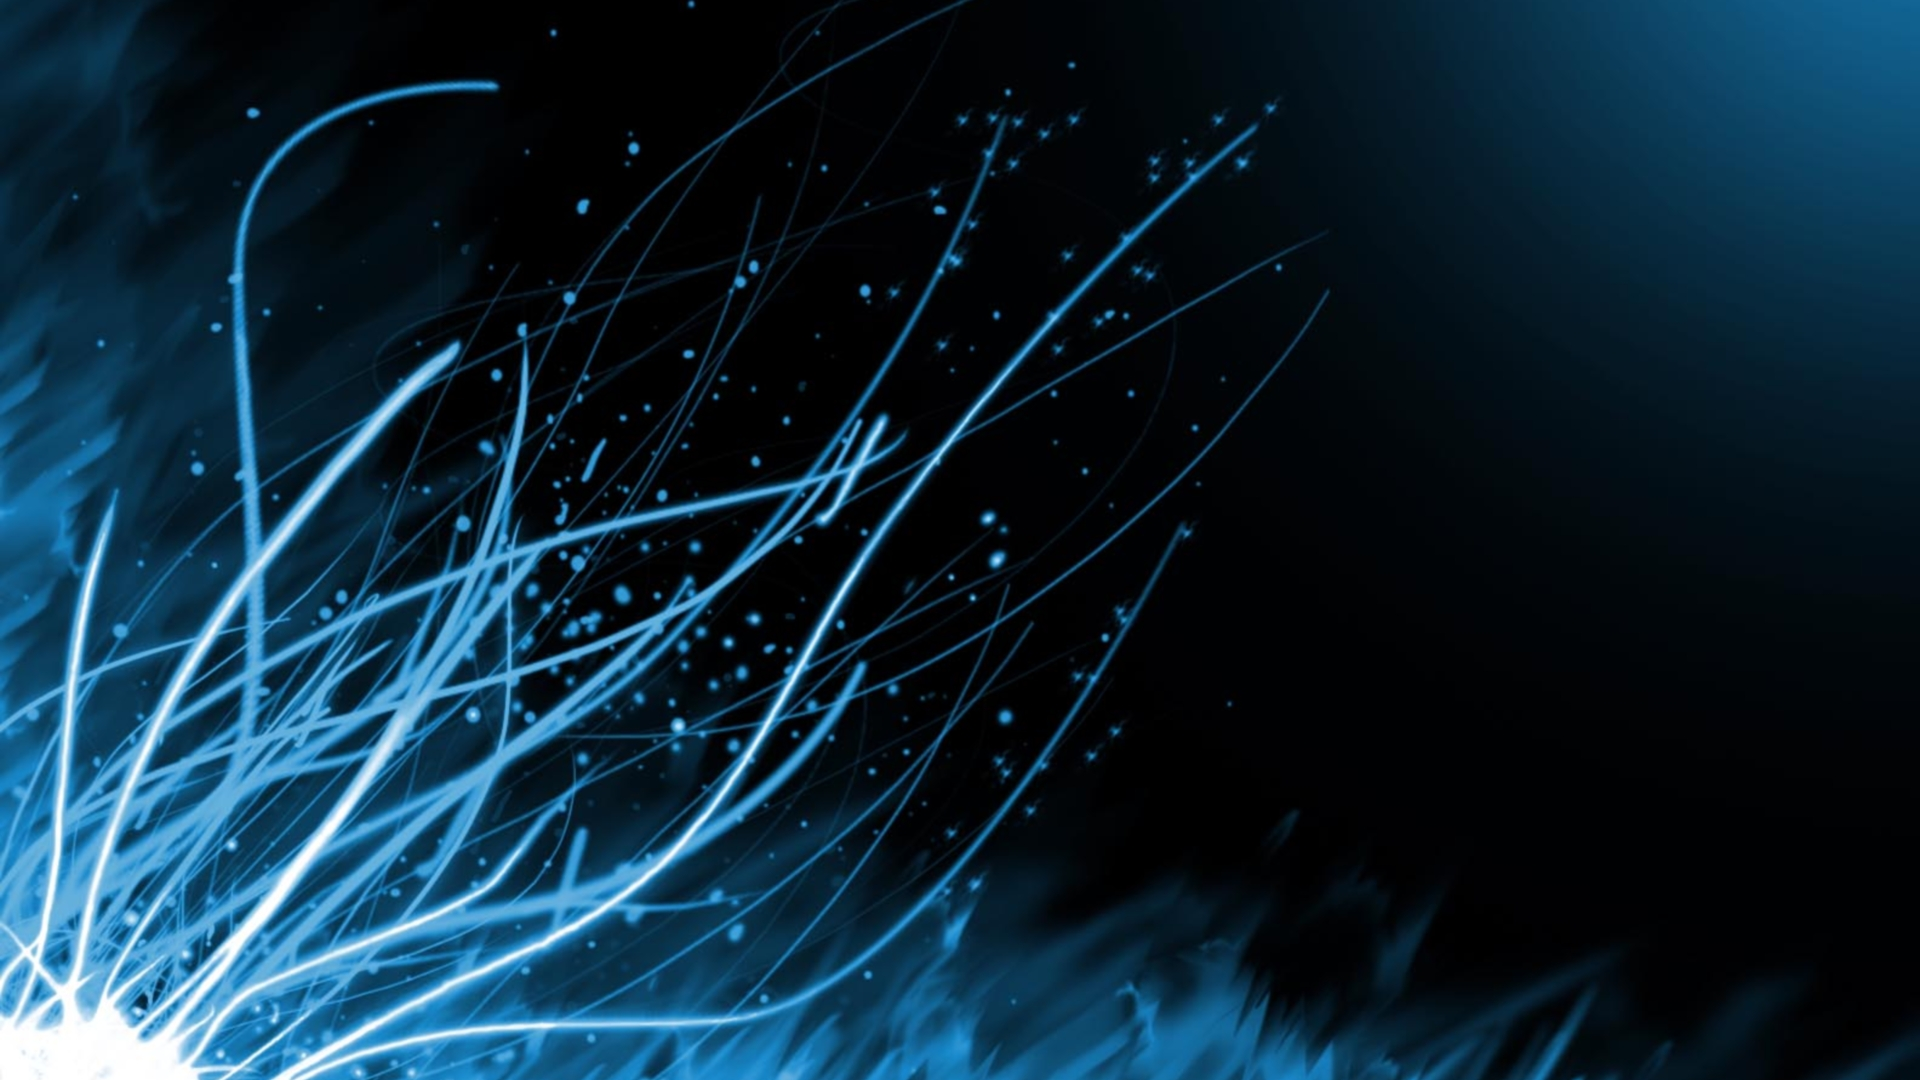 10 Most Popular Black And Blue Gaming Wallpaper Full Hd: Black And Blue Abstract Wallpaper